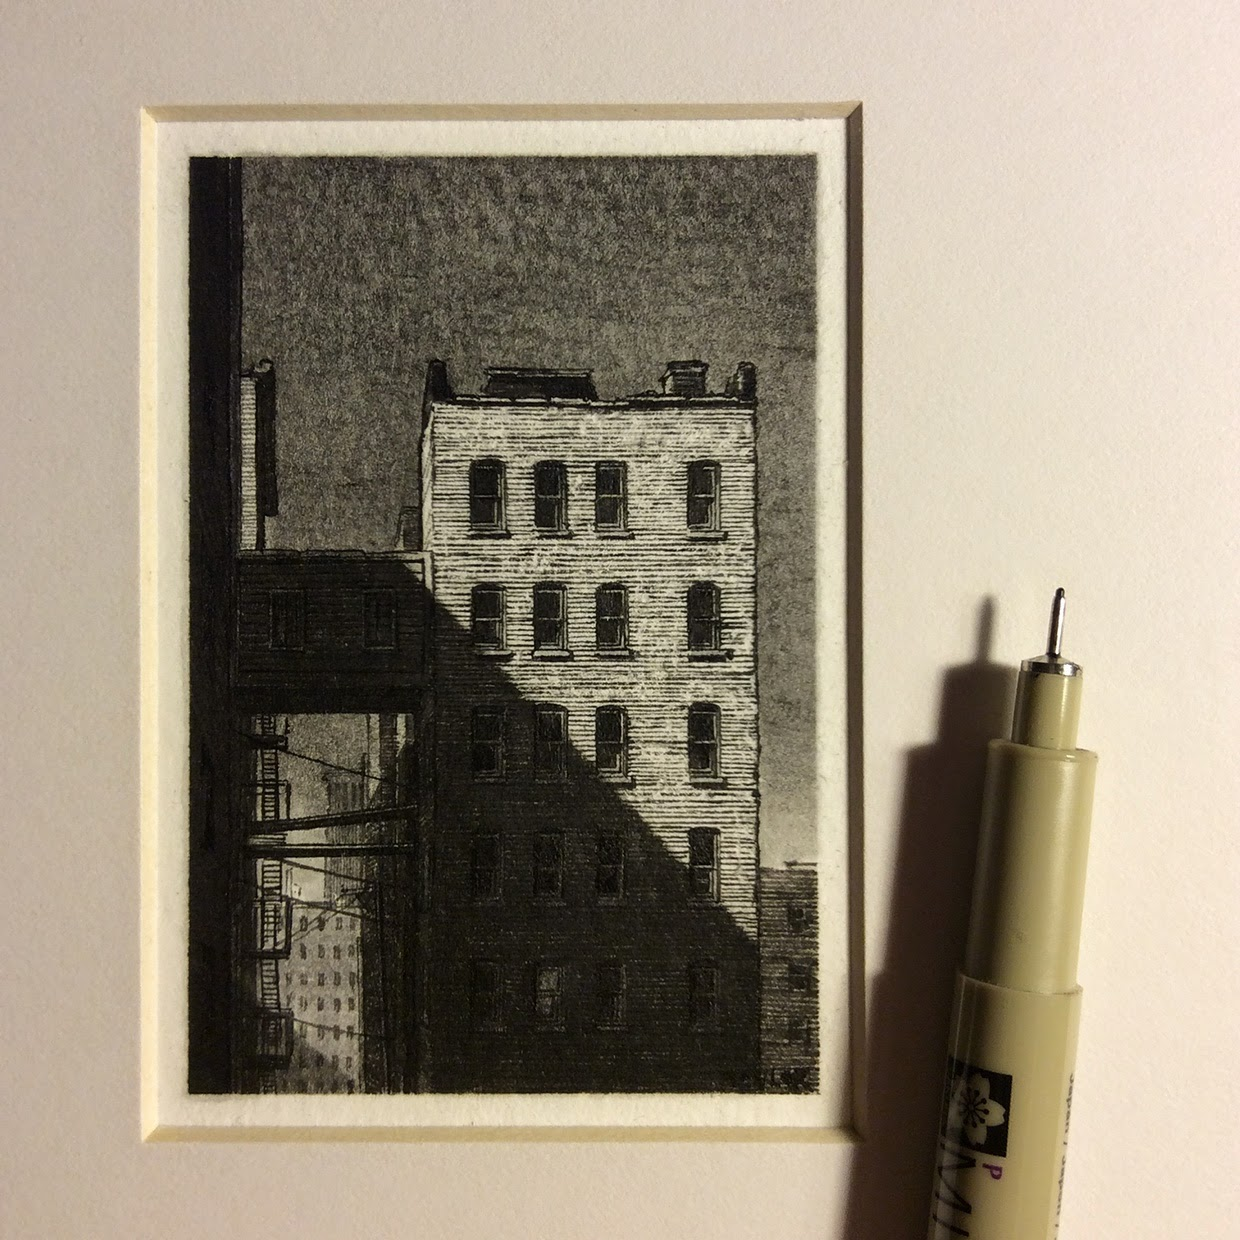 06-Taylor-Mazerhas-Miniature-Pencil-and-Ink-Drawings-with-a-lot-of-Detail-www-designstack-co